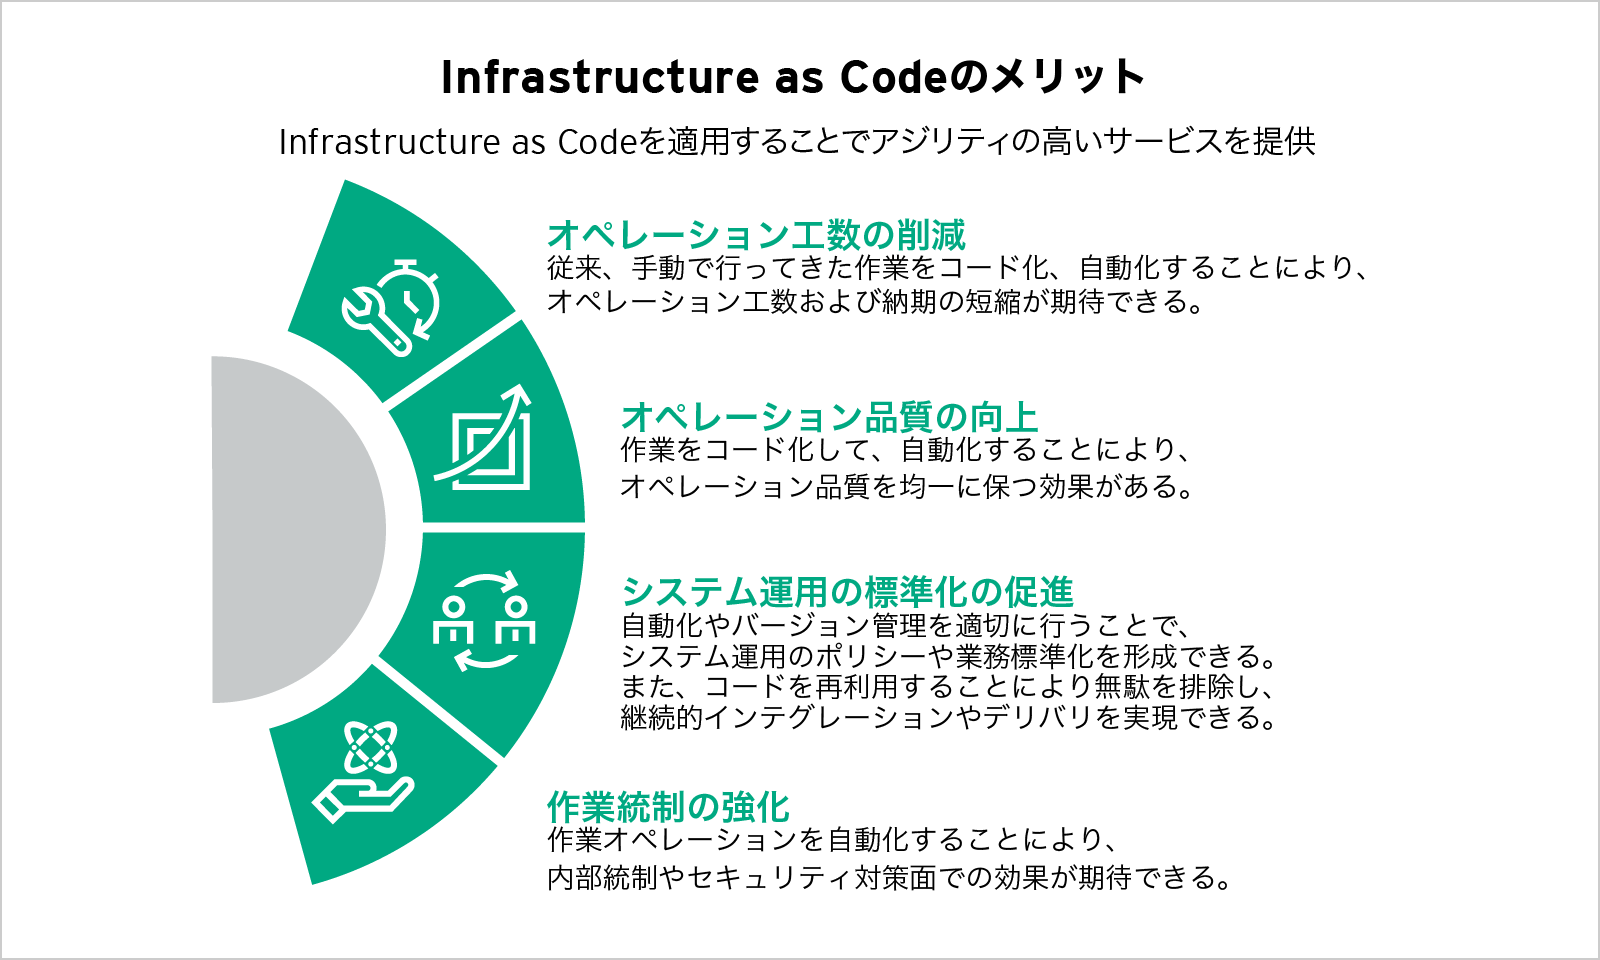 Infrastructure as Codeのメリット